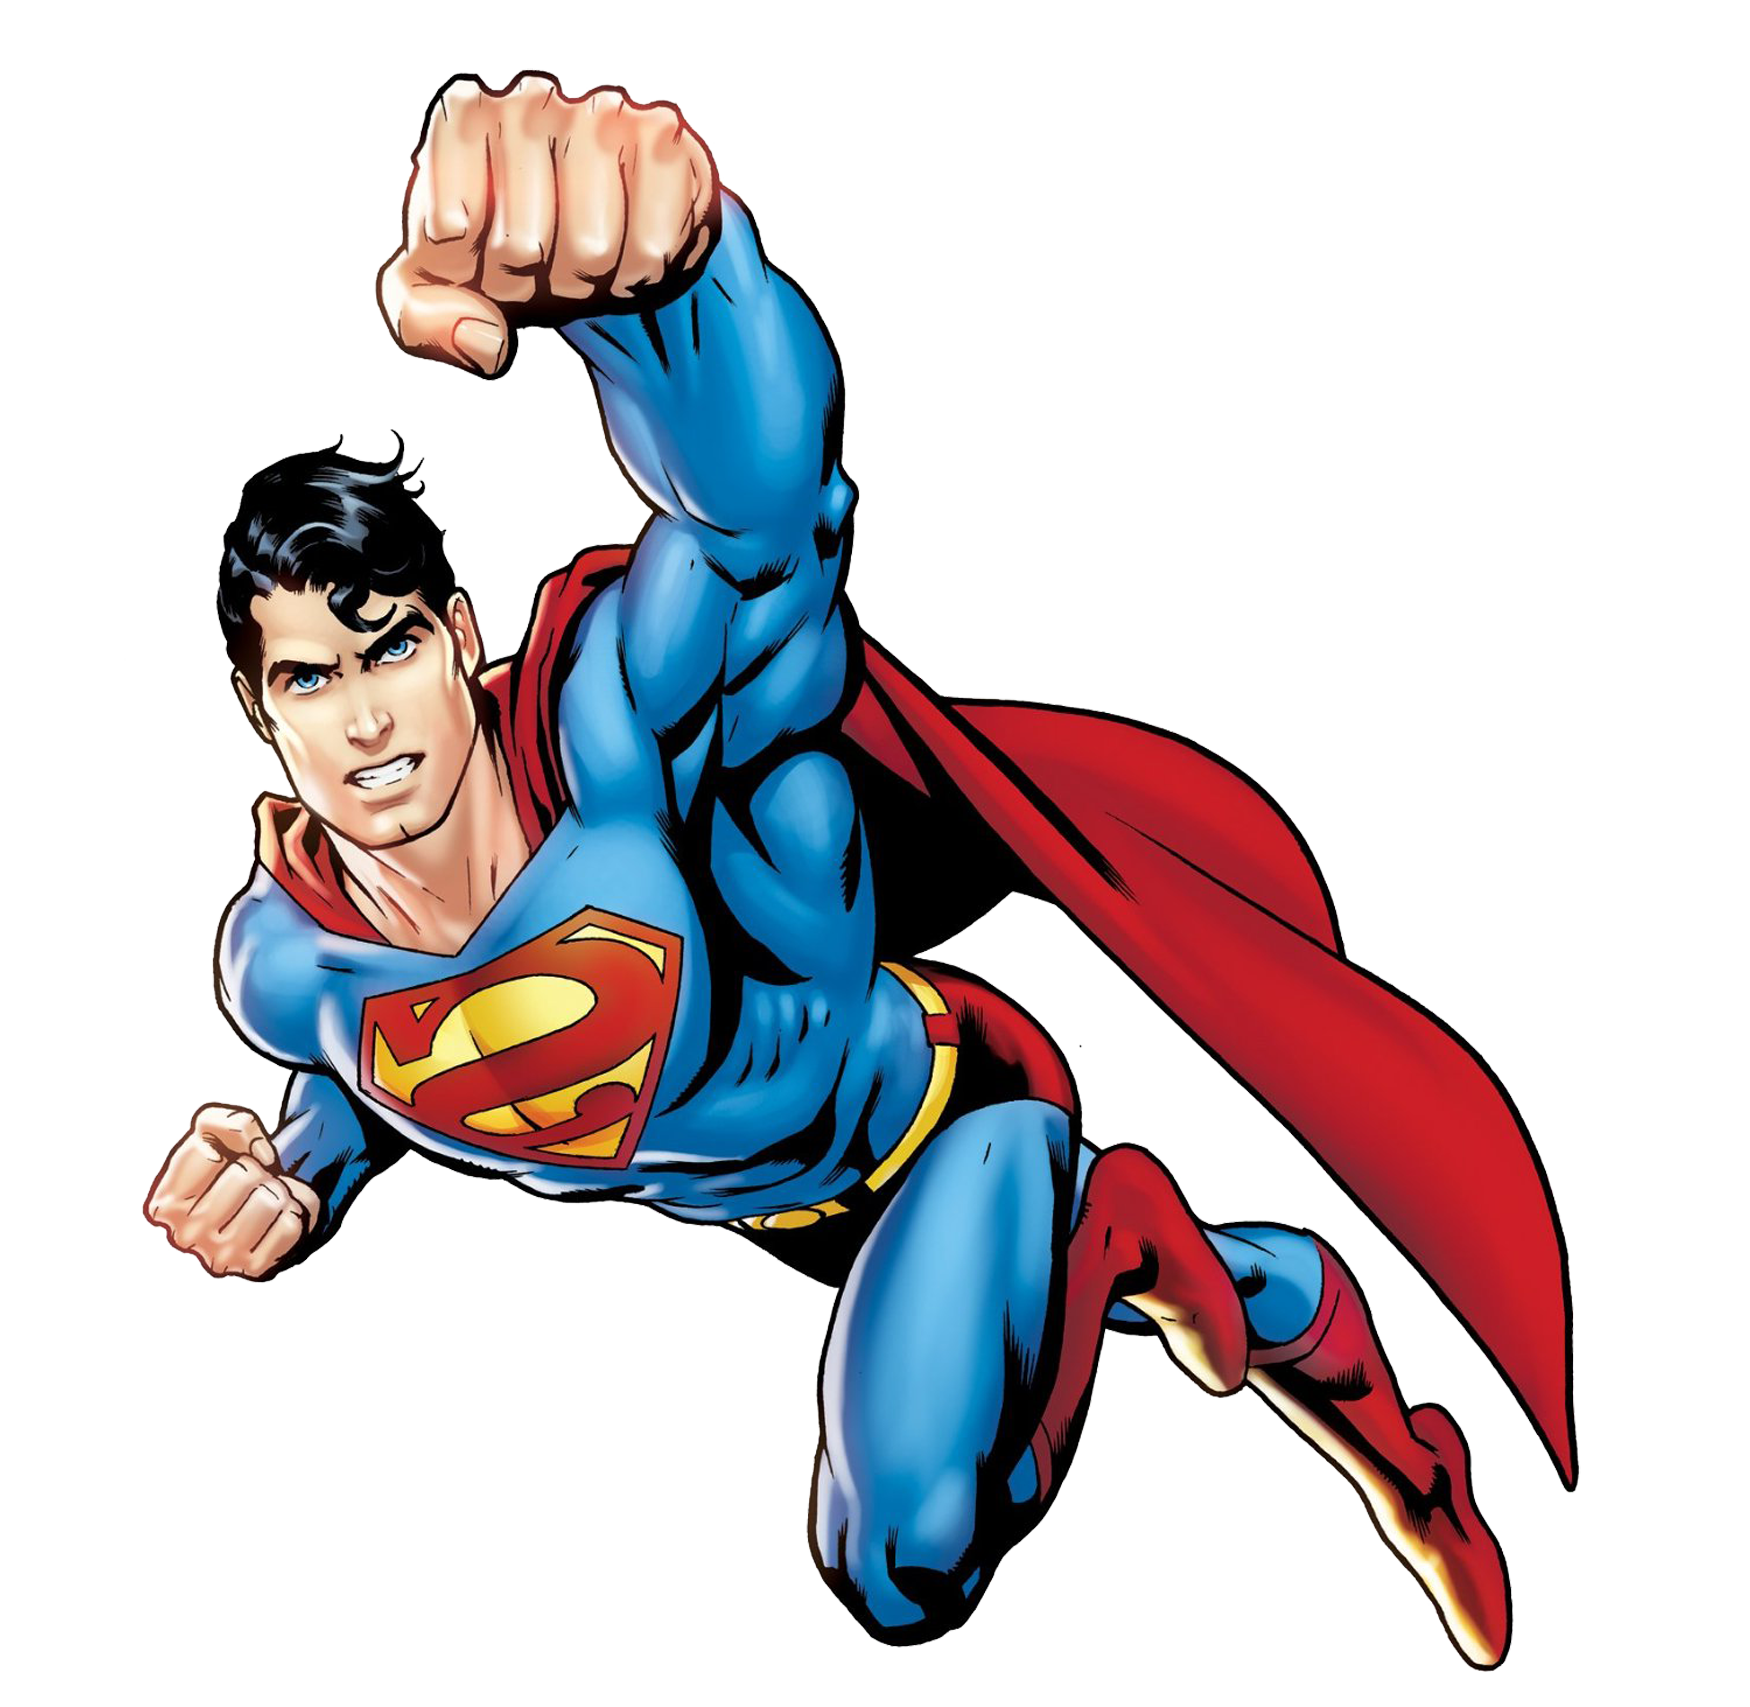 Free Superman Comic Png, Download Free Clip Art, Free Clip.